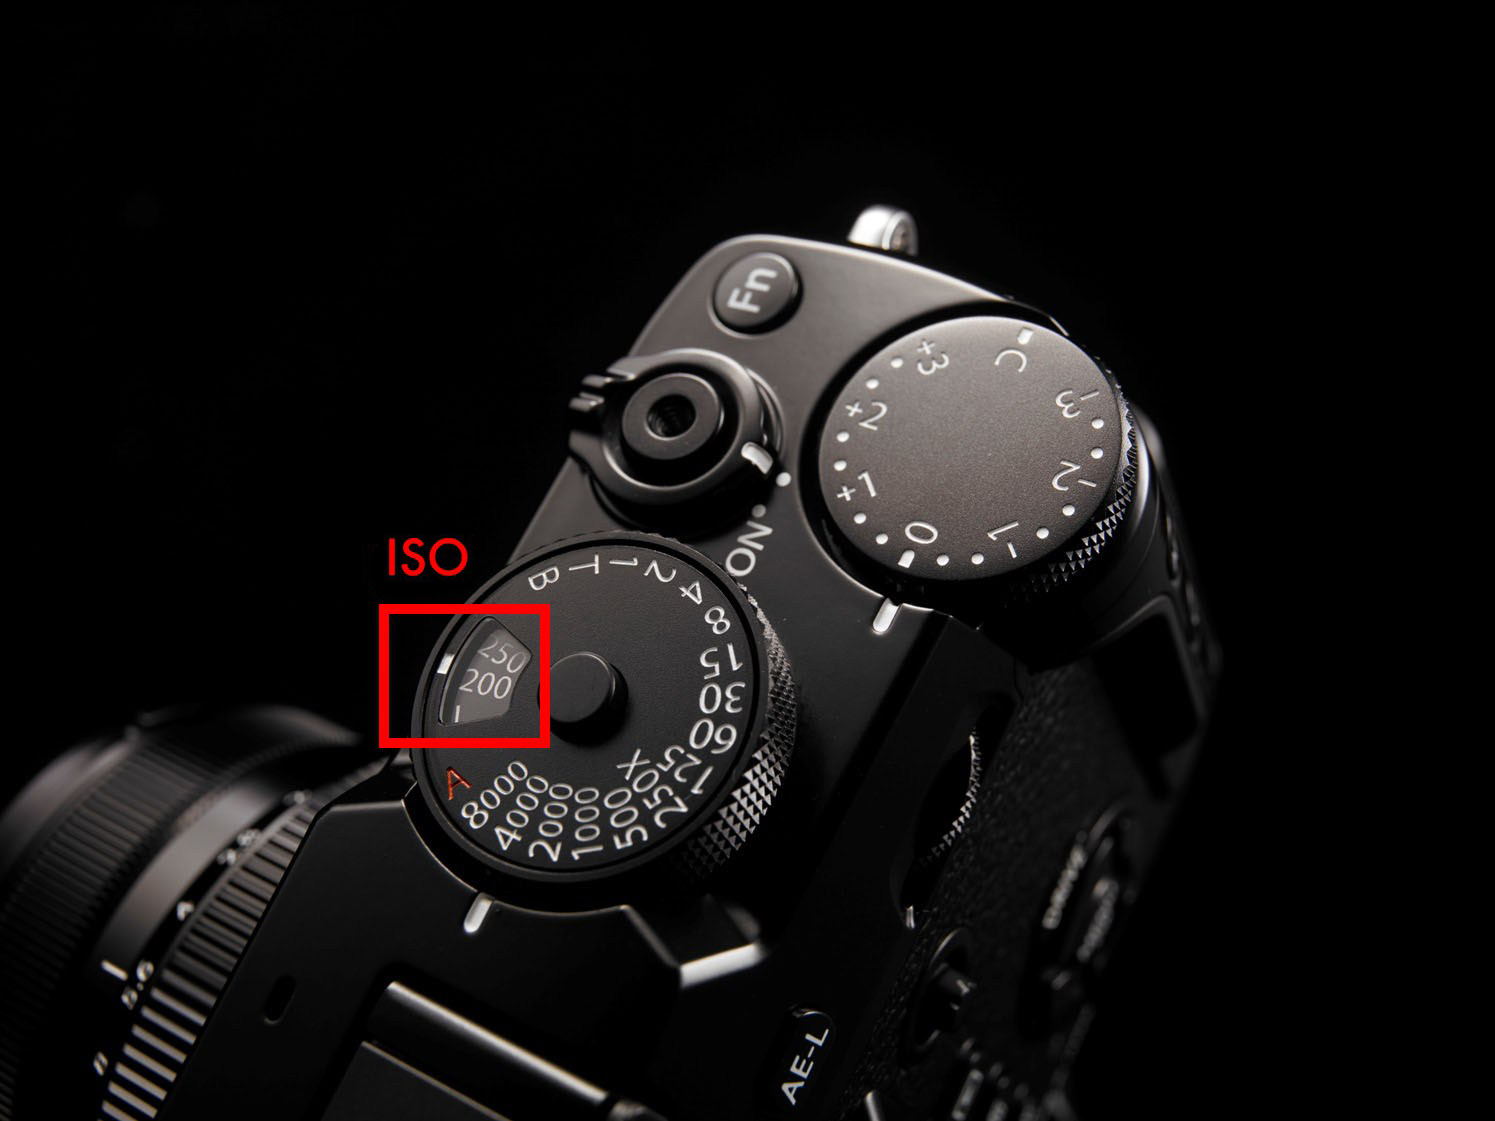 Fujifilm-X-Pro-2-ISO-Dial-integrated